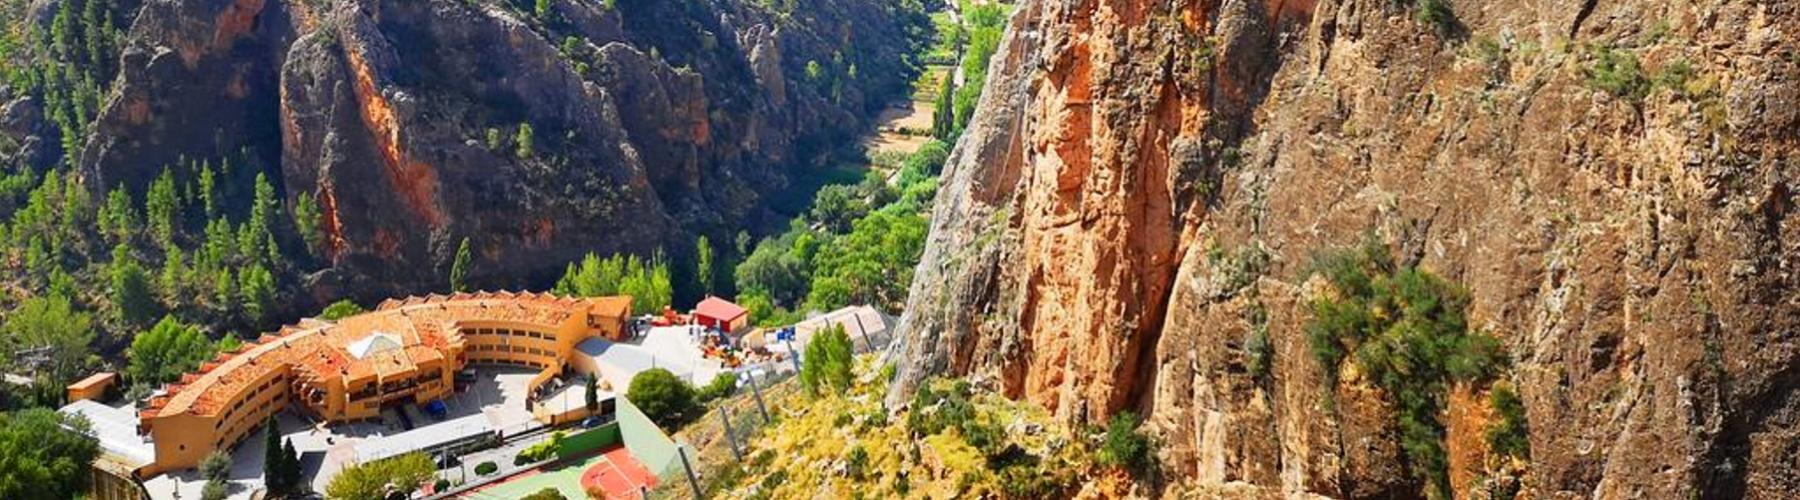 EuroTourGuide Coach Tour 20th-25th September Ayna Scenic Hideaway